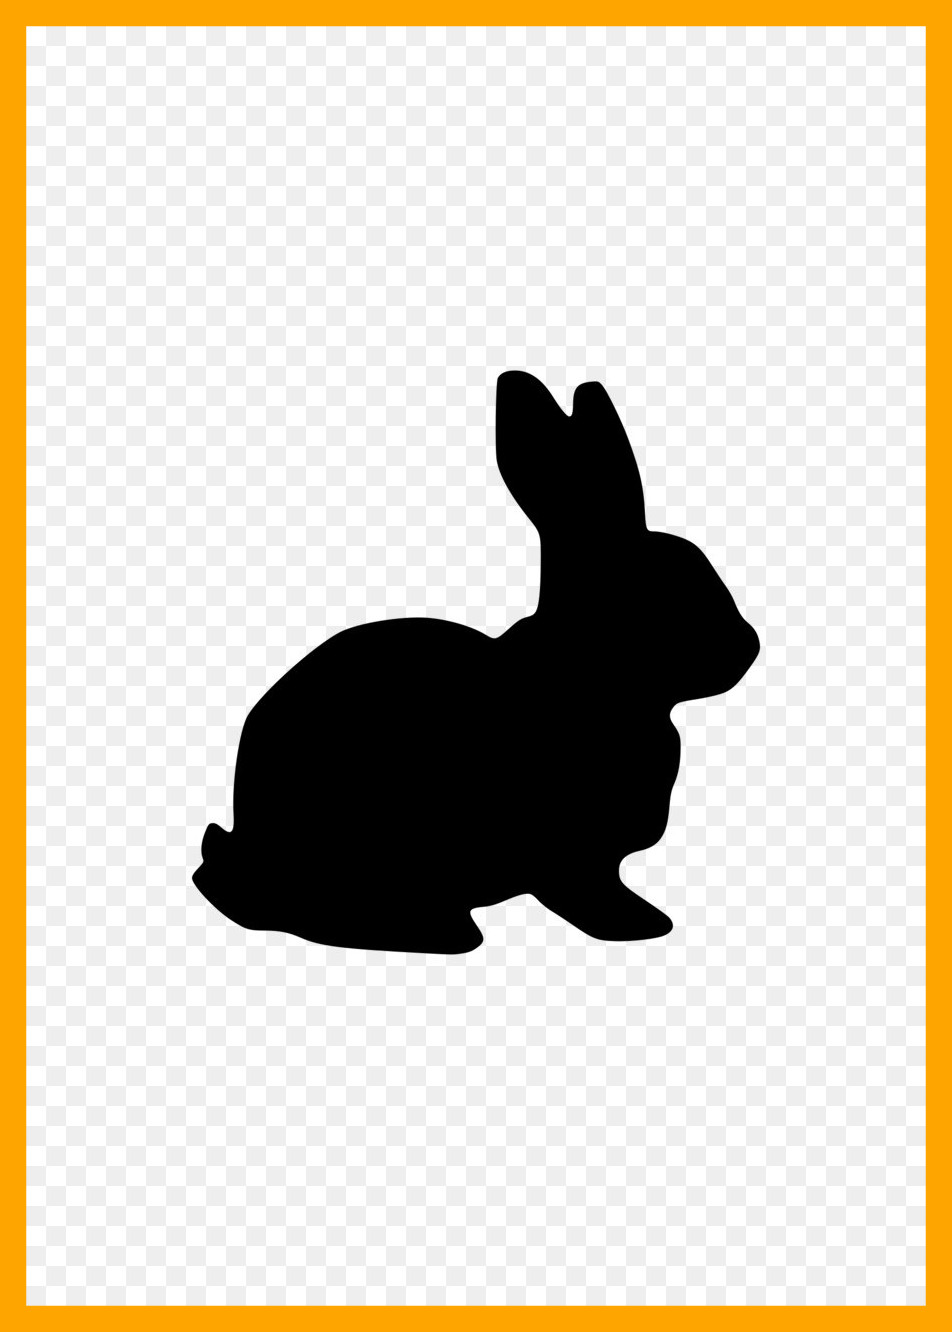 952x1332 Amazing Easter Bunny Vector Set Stock Pics Of Rabbit Silhouette